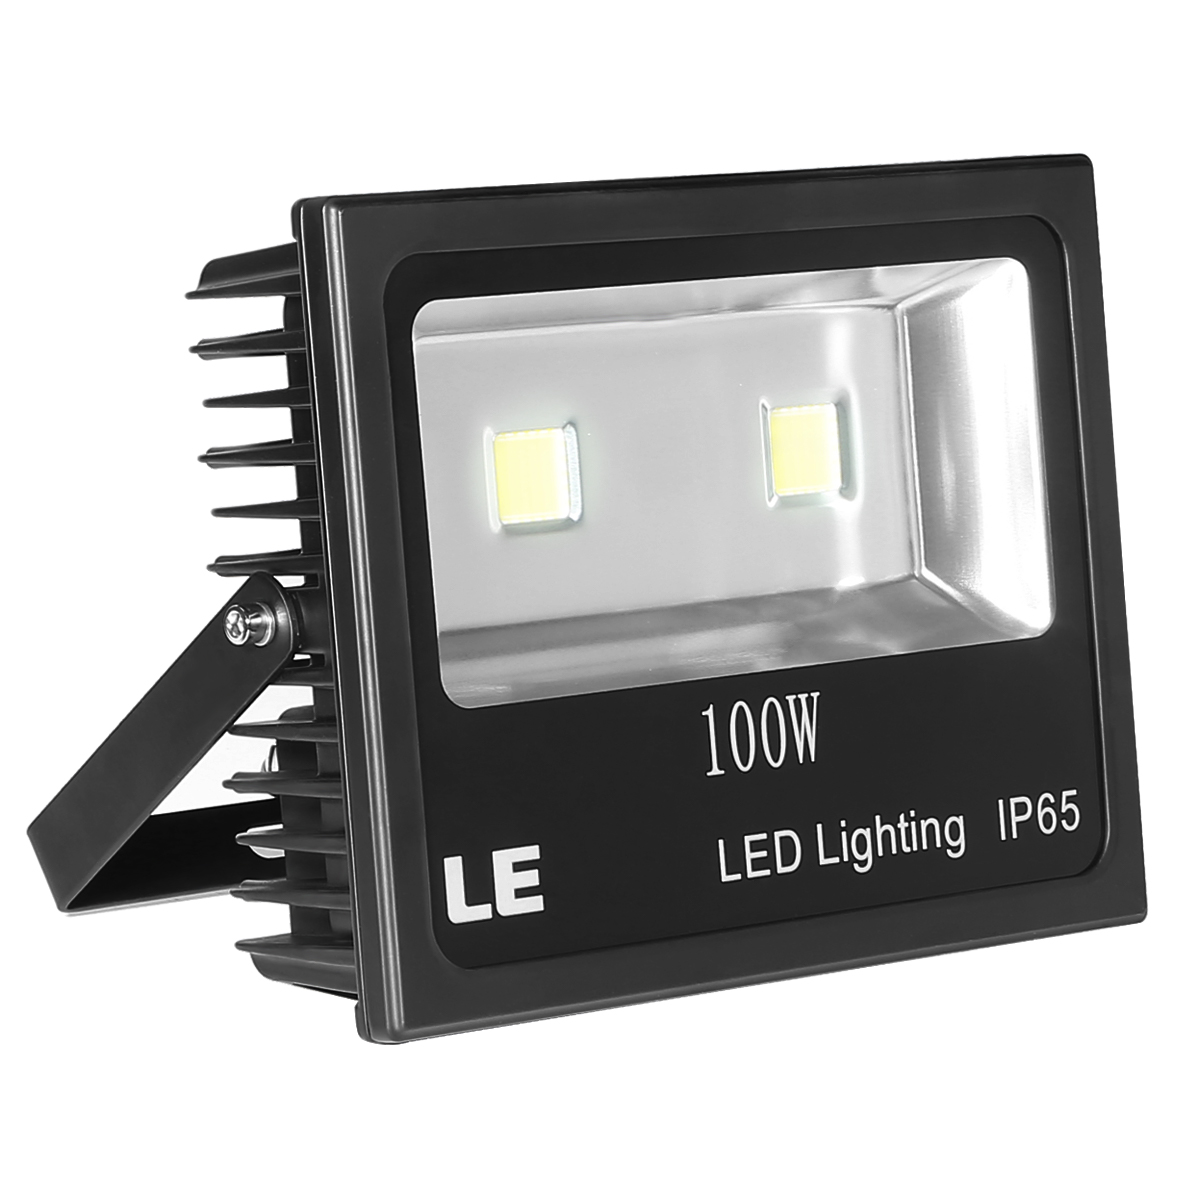 100W LED Floodlights  Waterproof 10150lm Outdoor Security Lights   LE